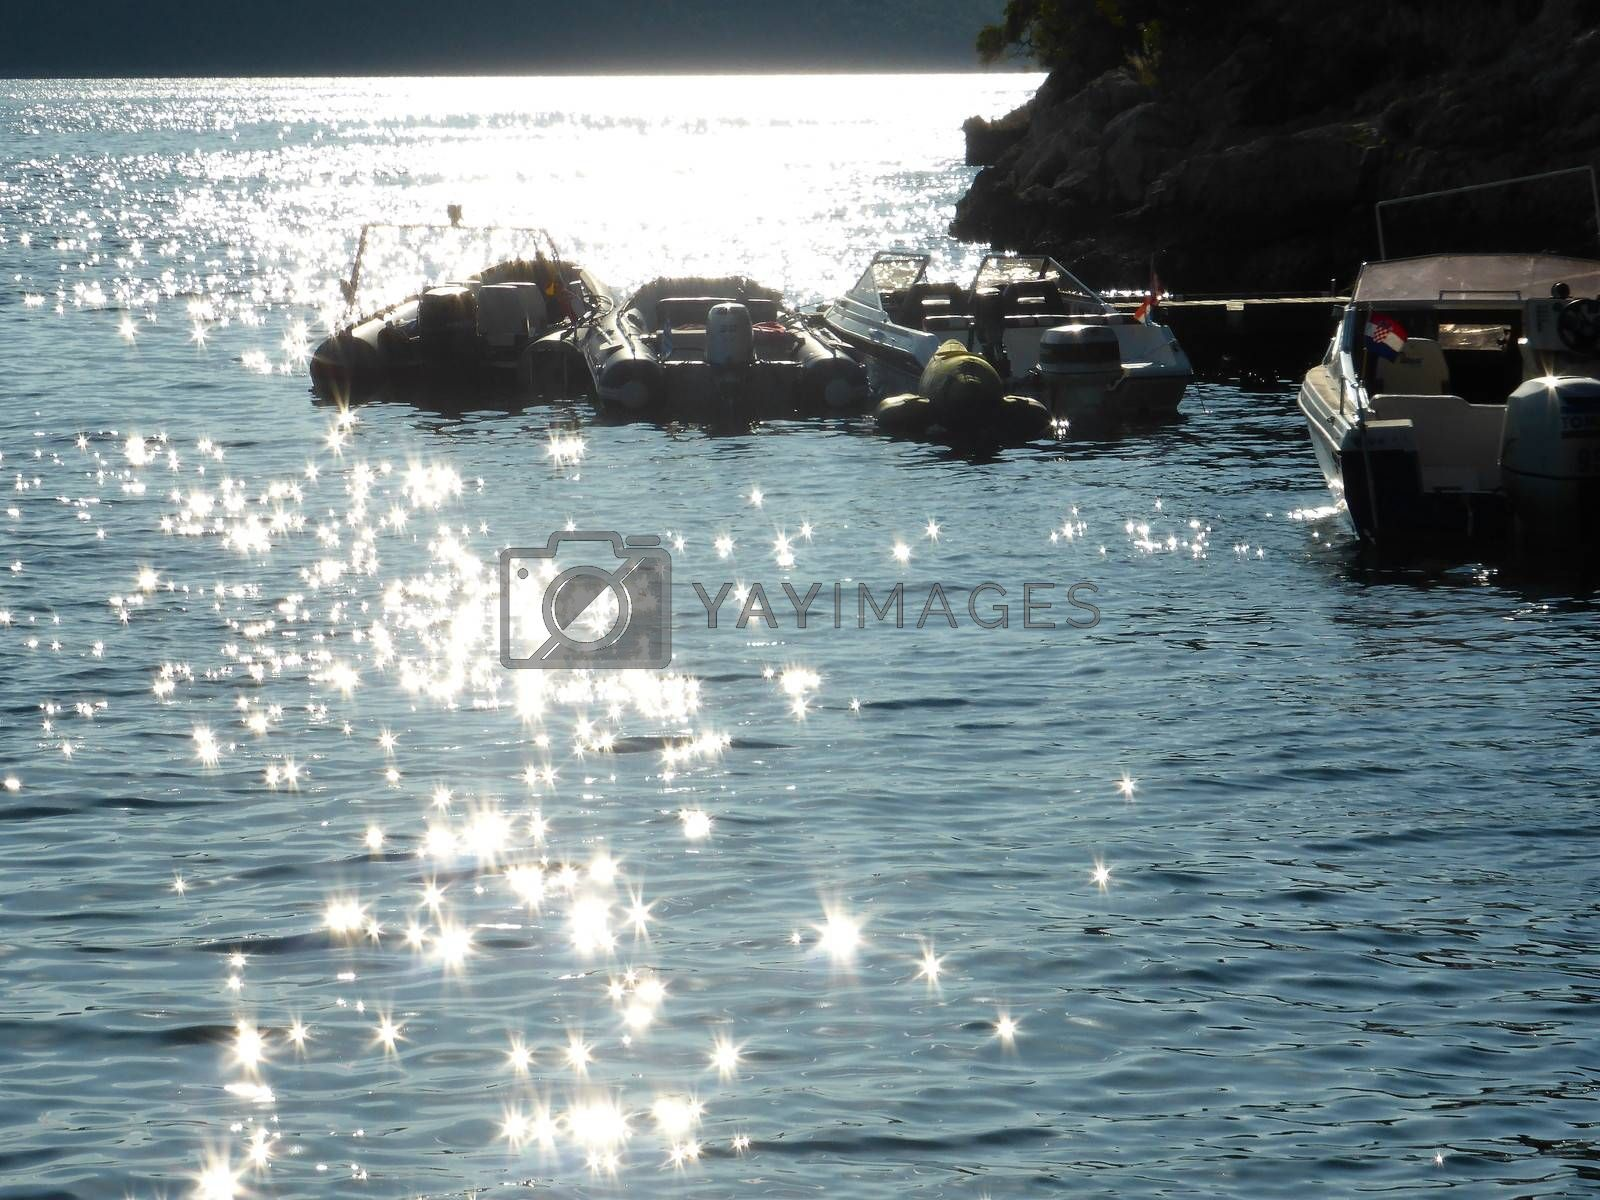 A beautiful sunny day on the crystal waters of the Adriatic Sea near Rovinj, Croatia. The sun is dazzling through romantic and peaceful reflexes on the quiet waves, while sleeping boats are resting on the background waiting for a fisher or a romantic couple taking a rest.